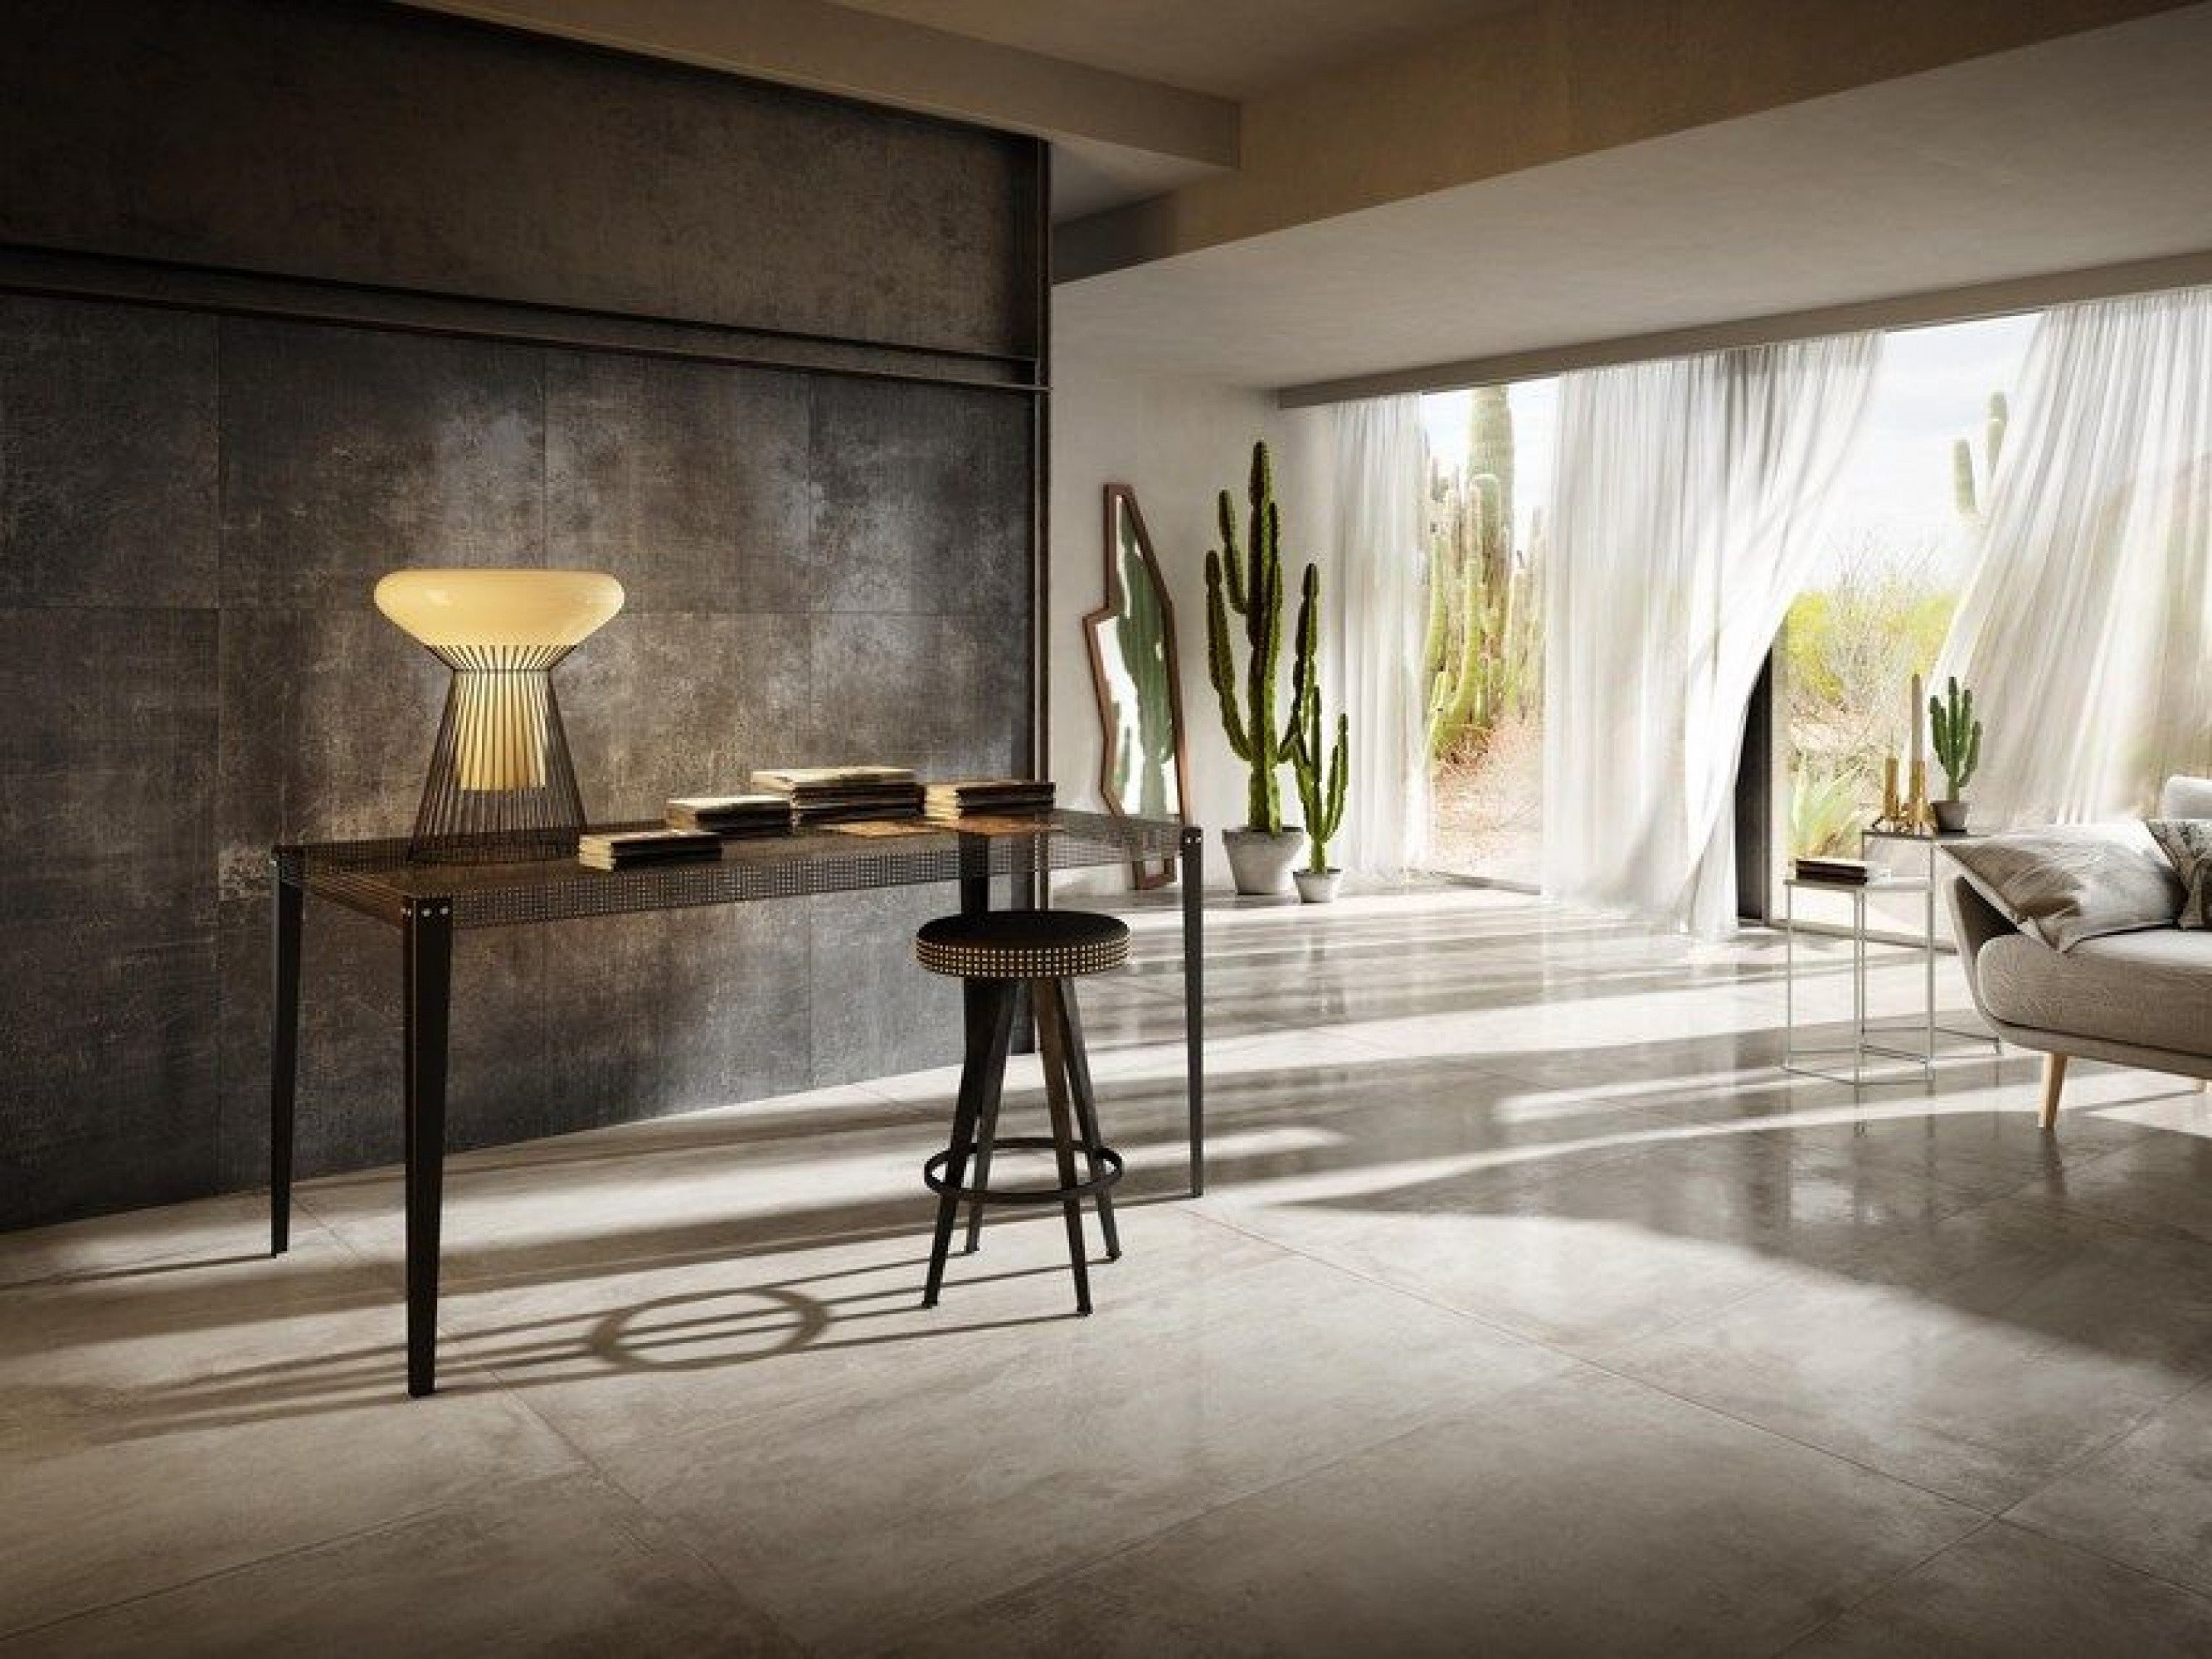 Sumber Archiproducts